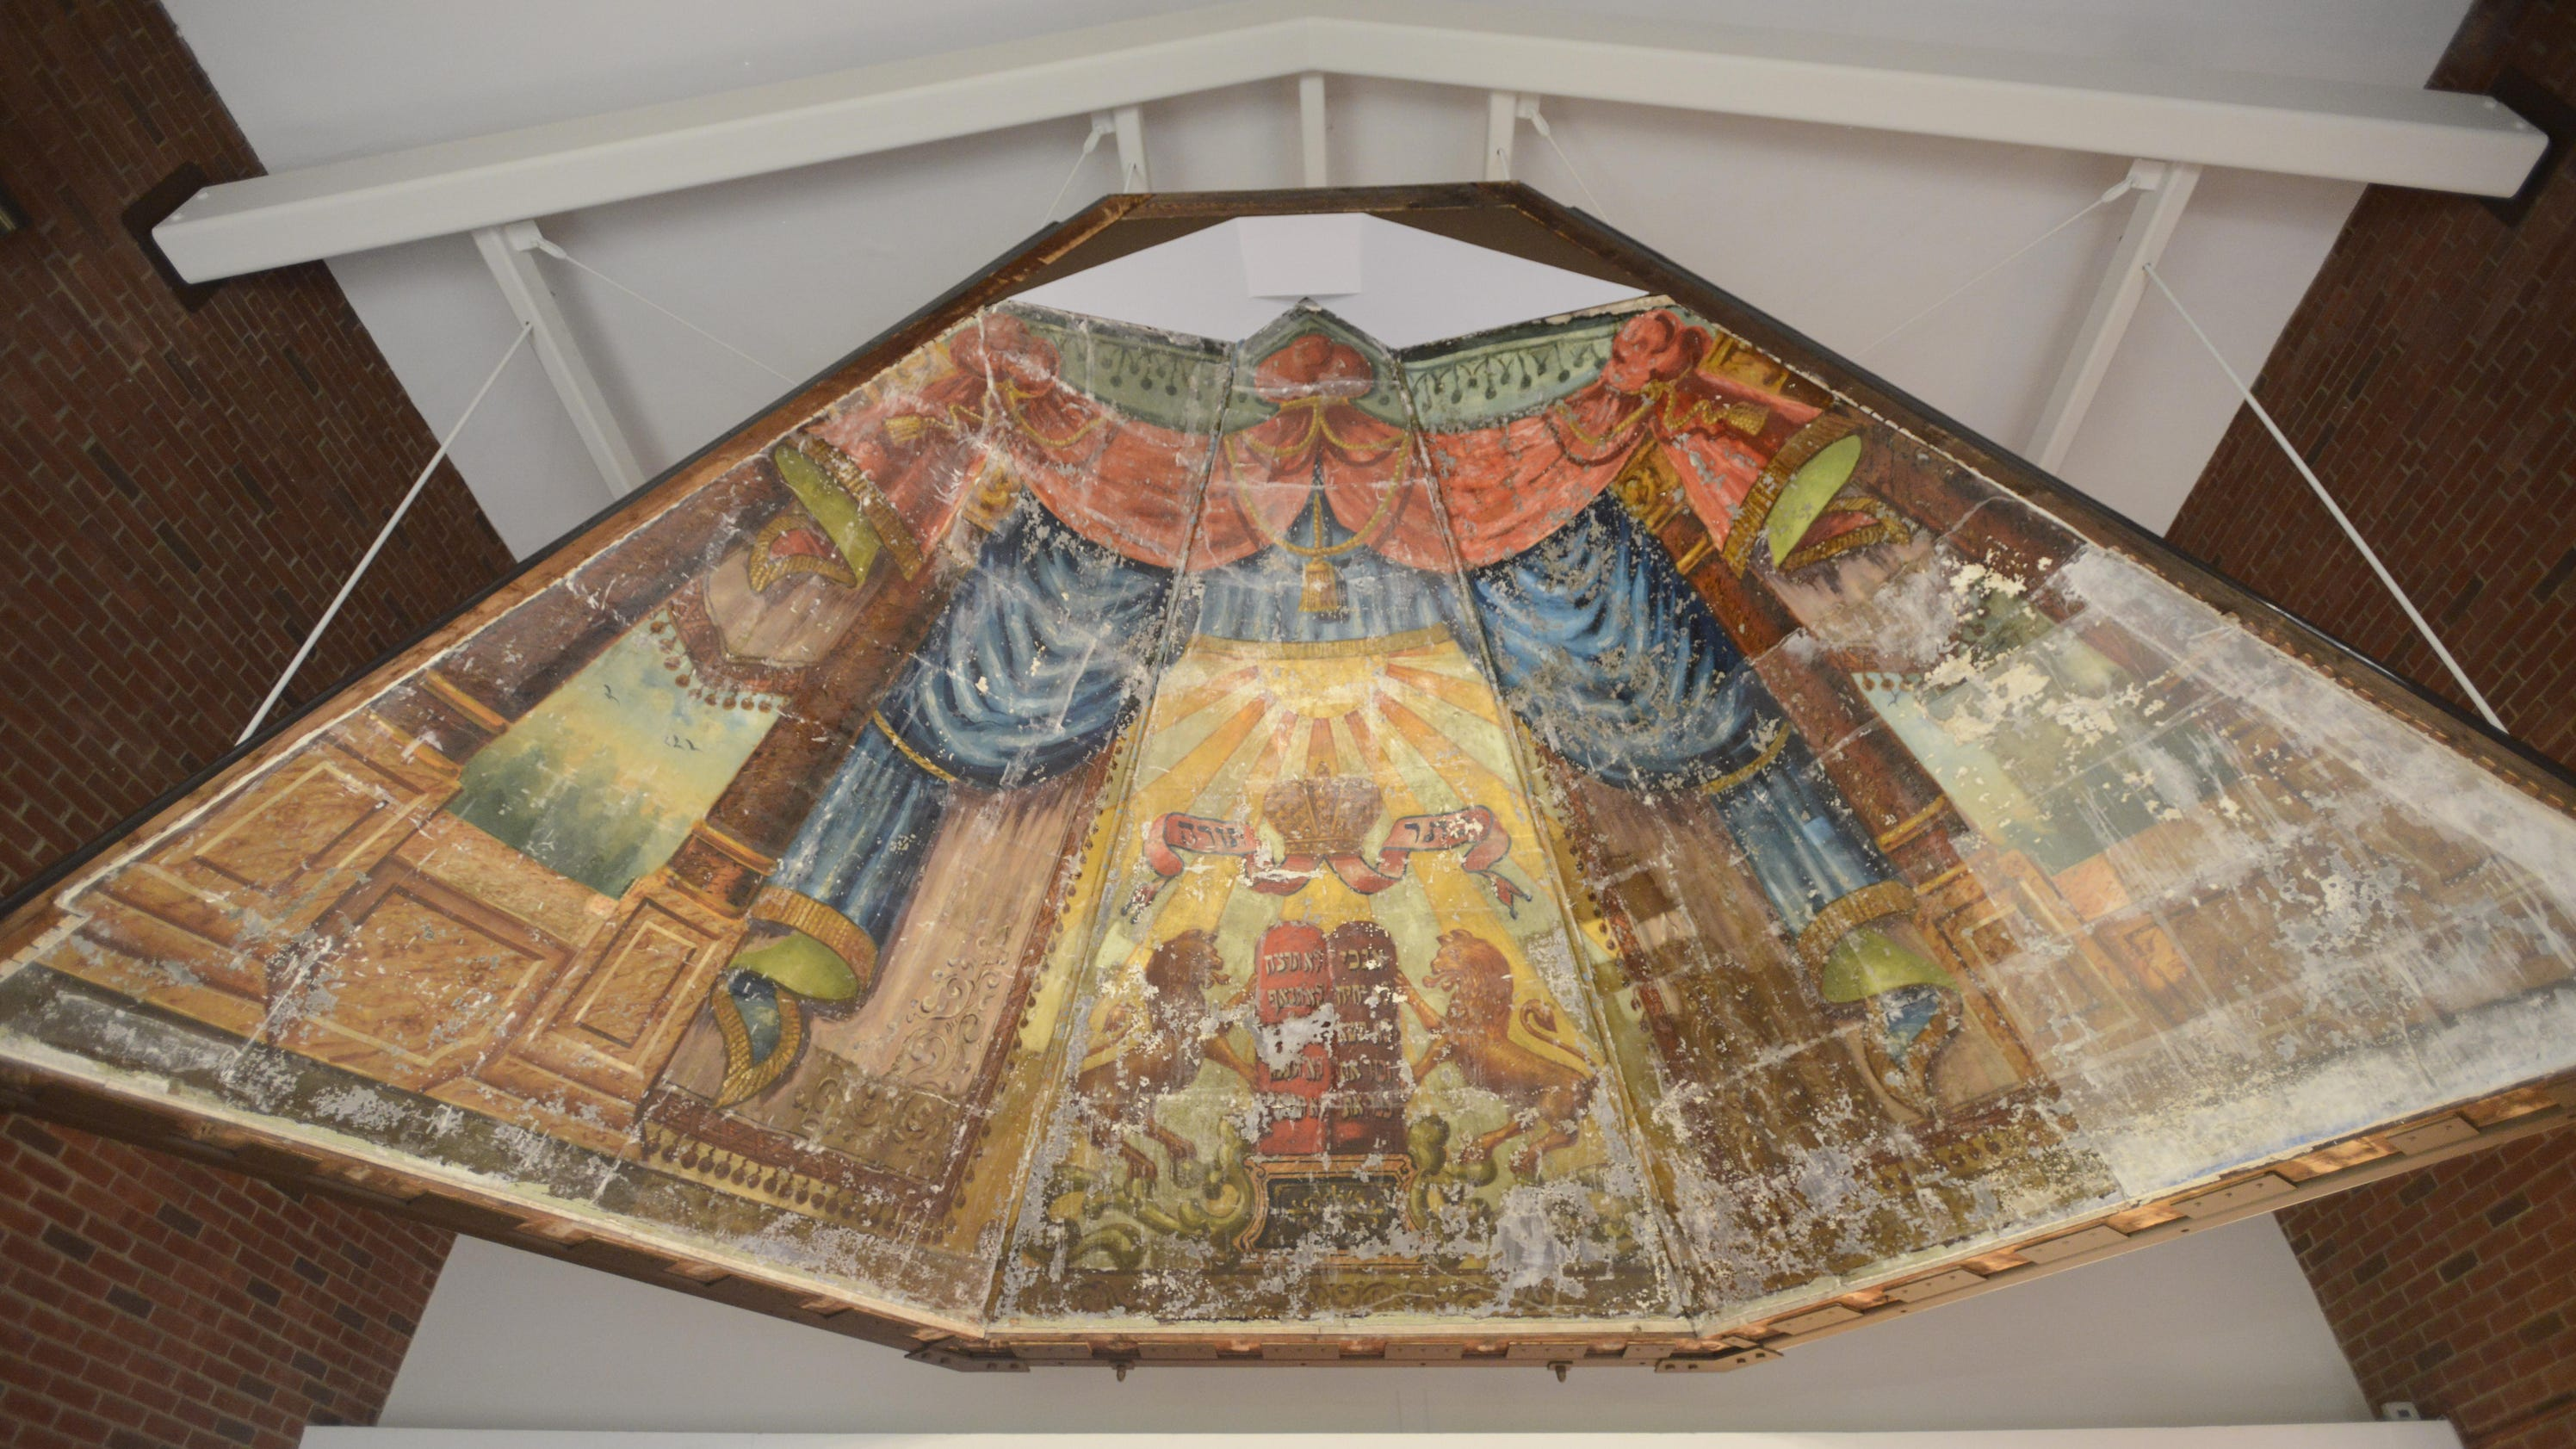 39 Lost 39 Jewish Mural Revealed In New Home